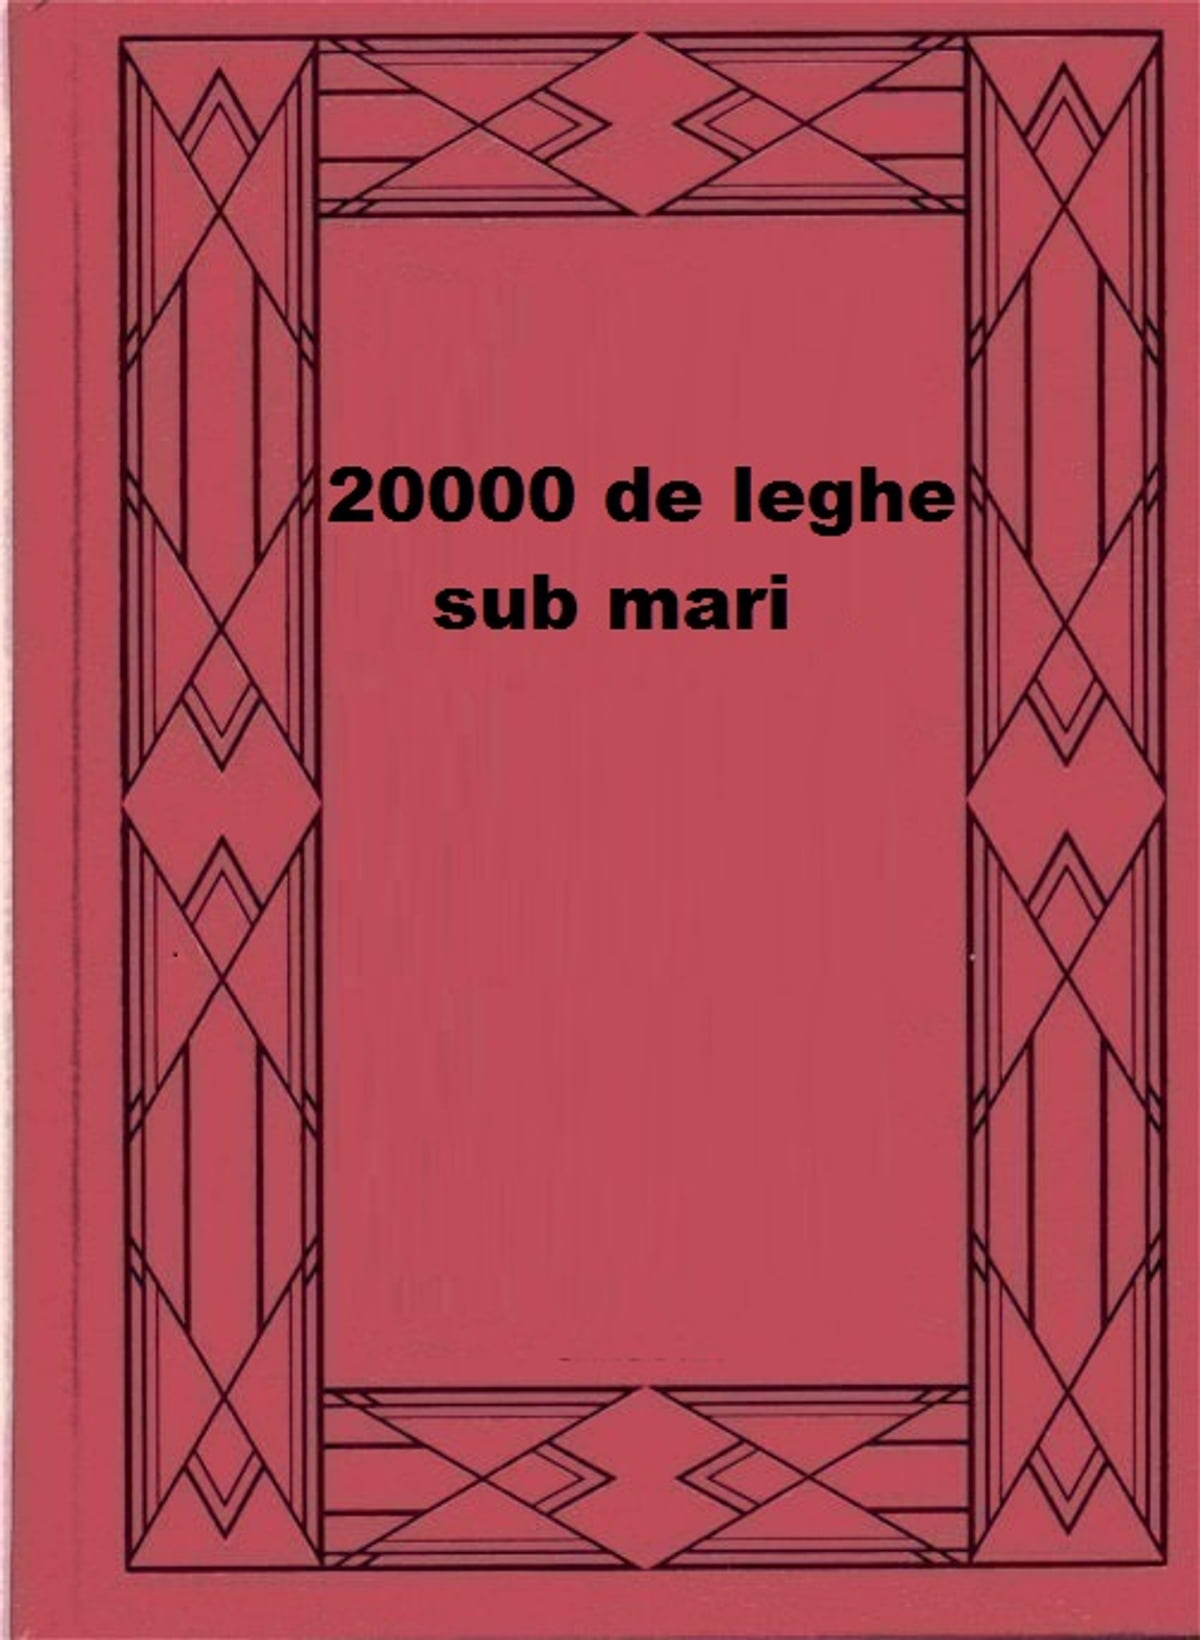 20000 de leghe sub mari ebook by jules verne 1230001331929